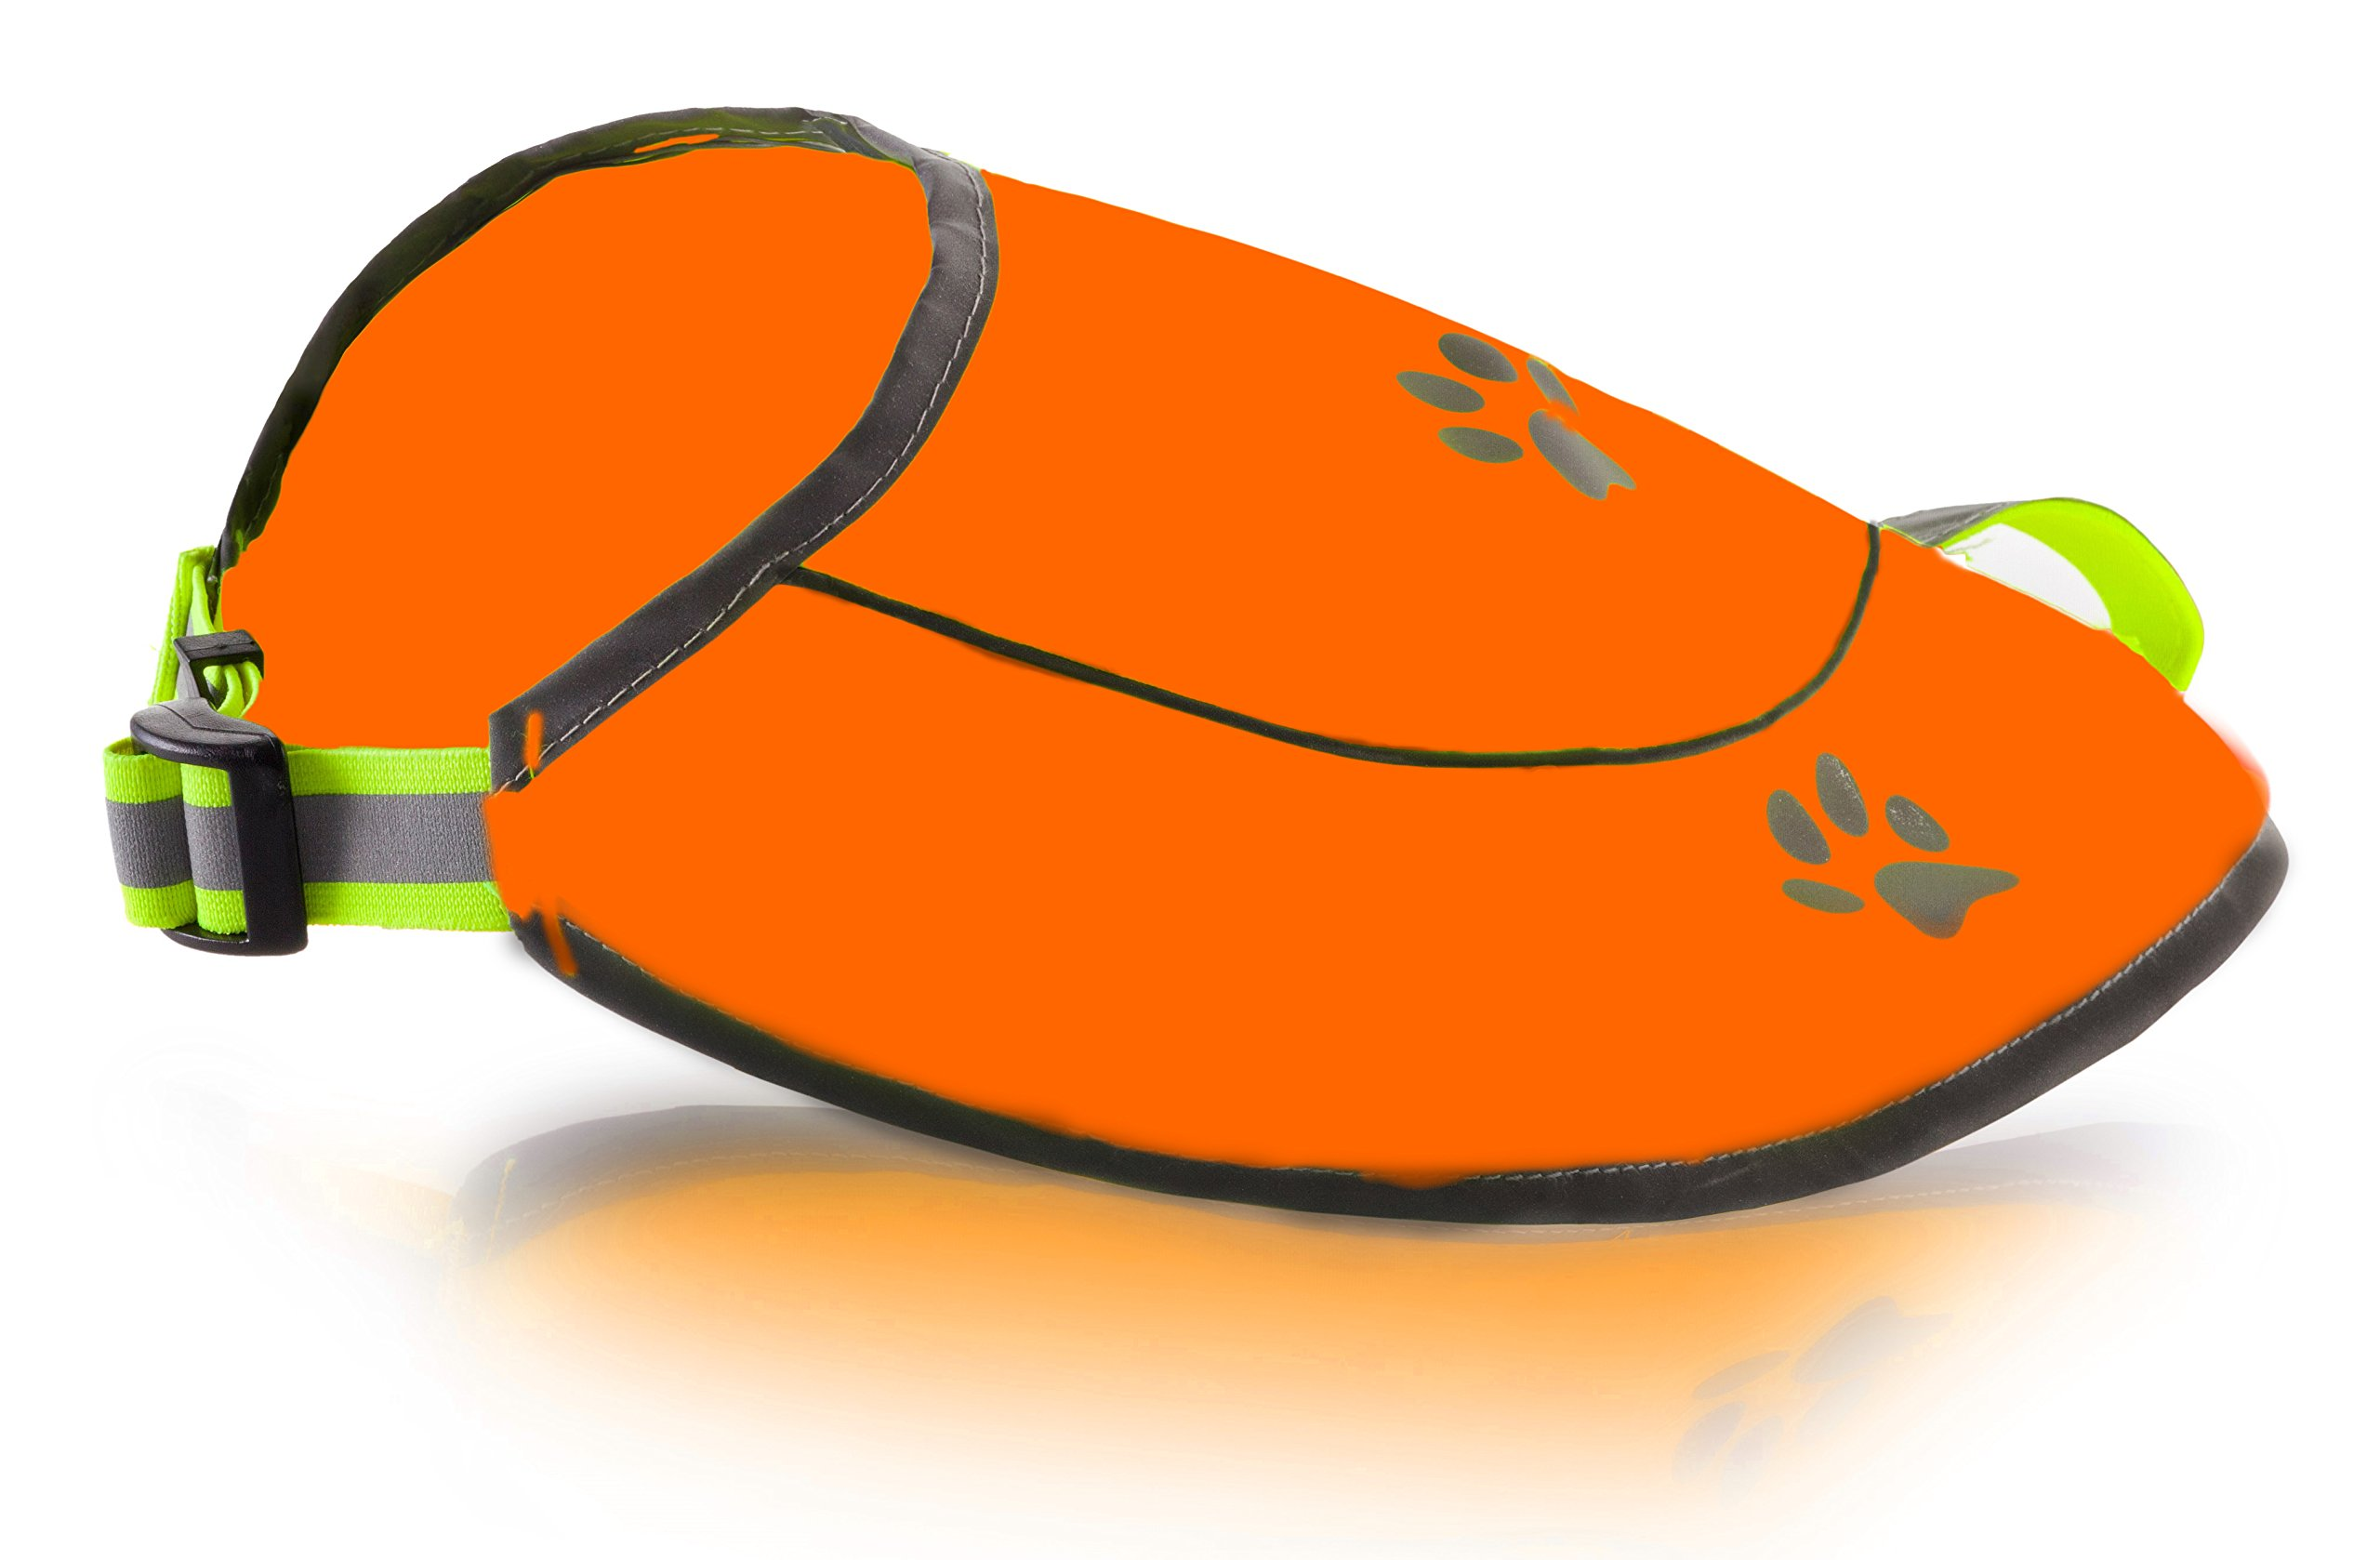 Dog Safety Reflective Vest, Hunting Waterproof Orange Vest for Best Visibility at Day and Night with Claps, Connectors Comfortable Adjustable Size, XS S M L XL XXL Orange Color (L, Orange)